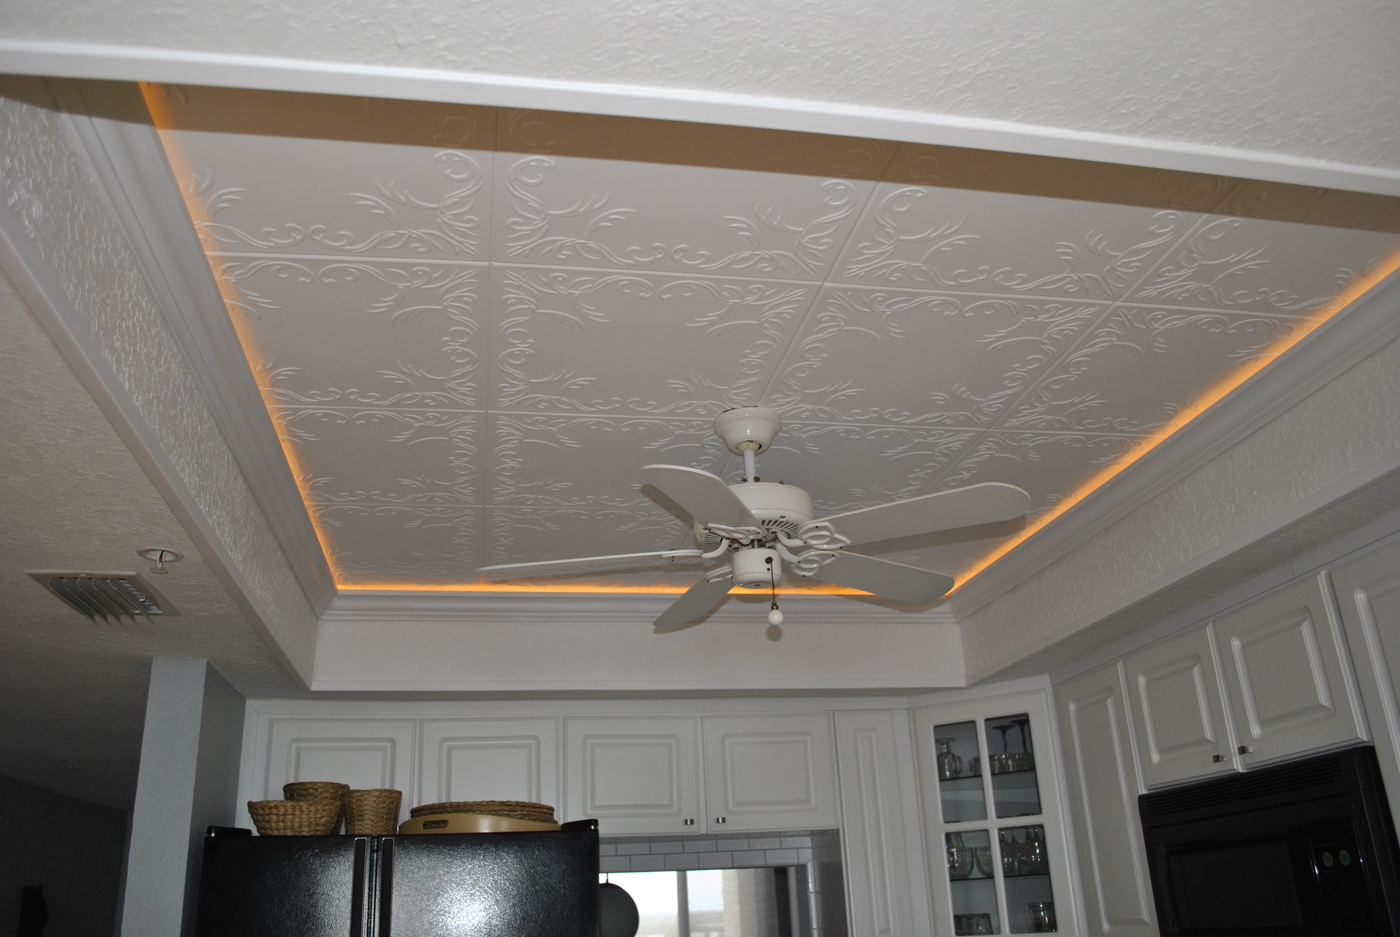 Roven Foam Decorative ceiling tiles installed in a kitchen ceiling